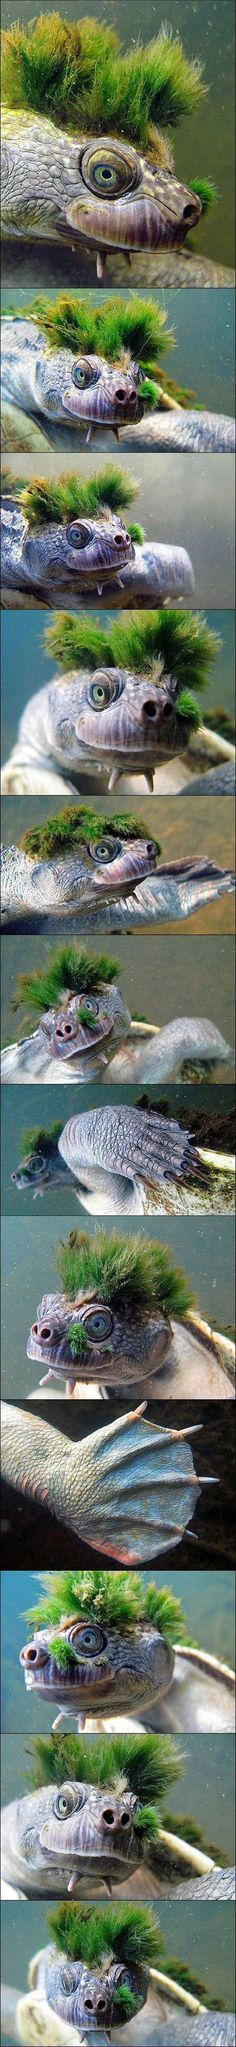 Moss turtle, and you thought you had a bad hair day. prob gonna have nightmares of this thing.